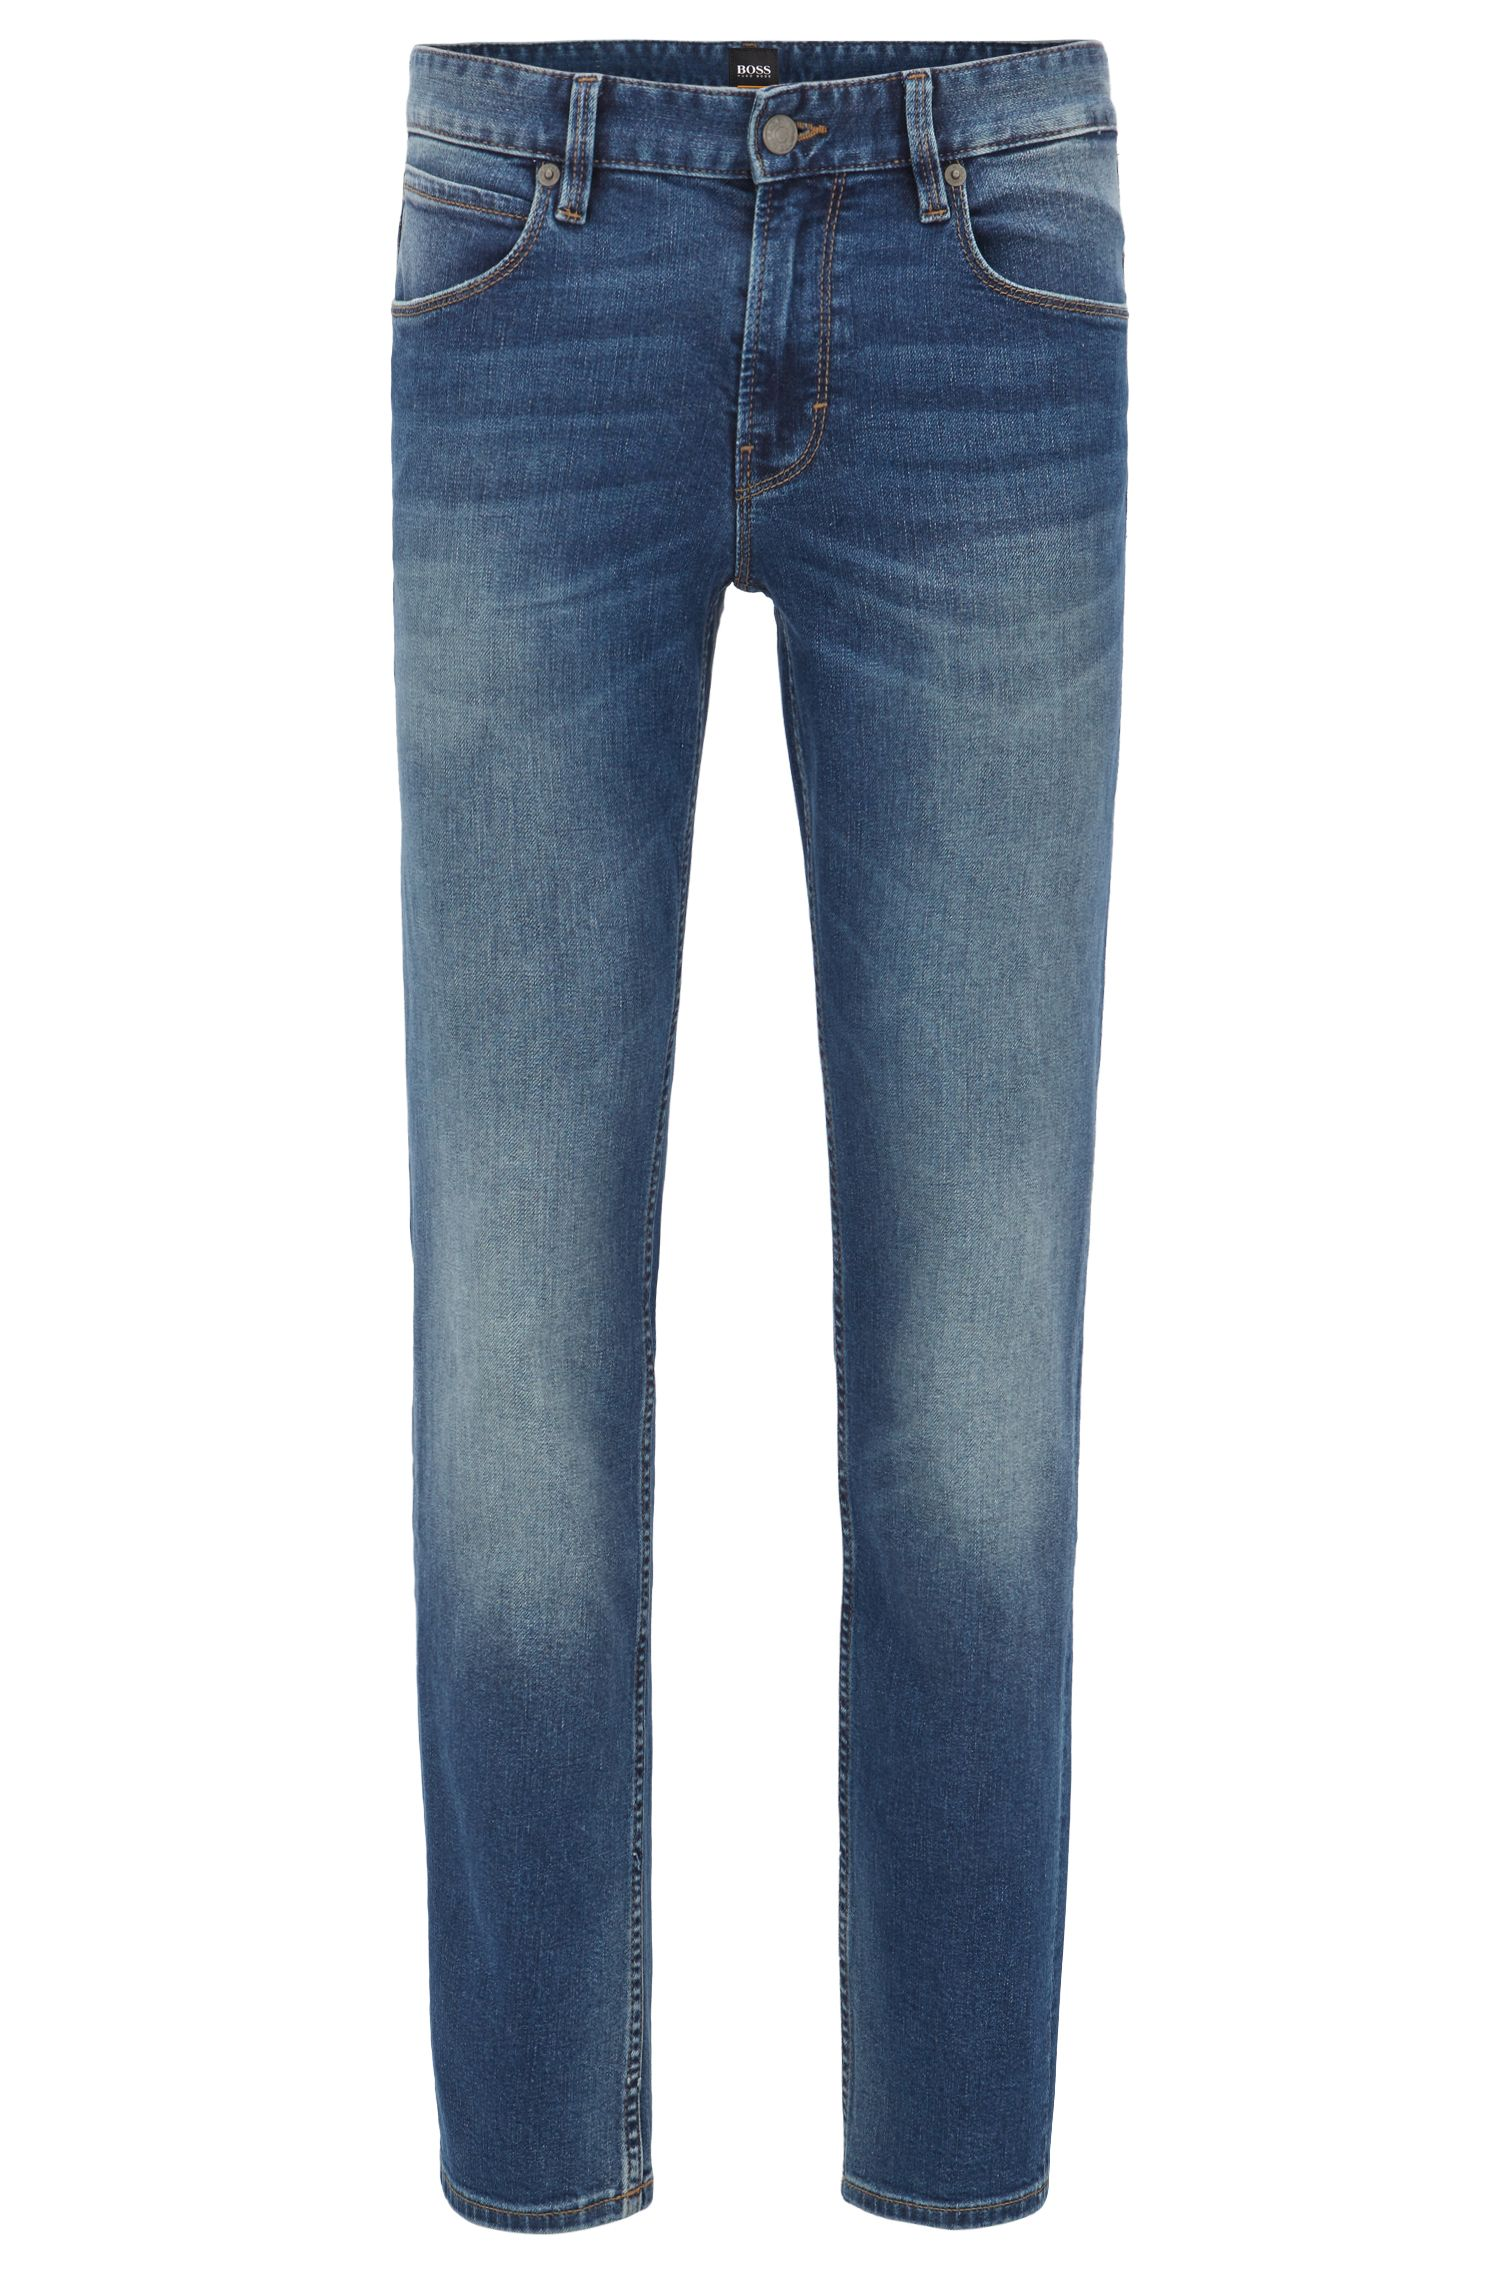 Slim-fit jeans in washed indigo denim